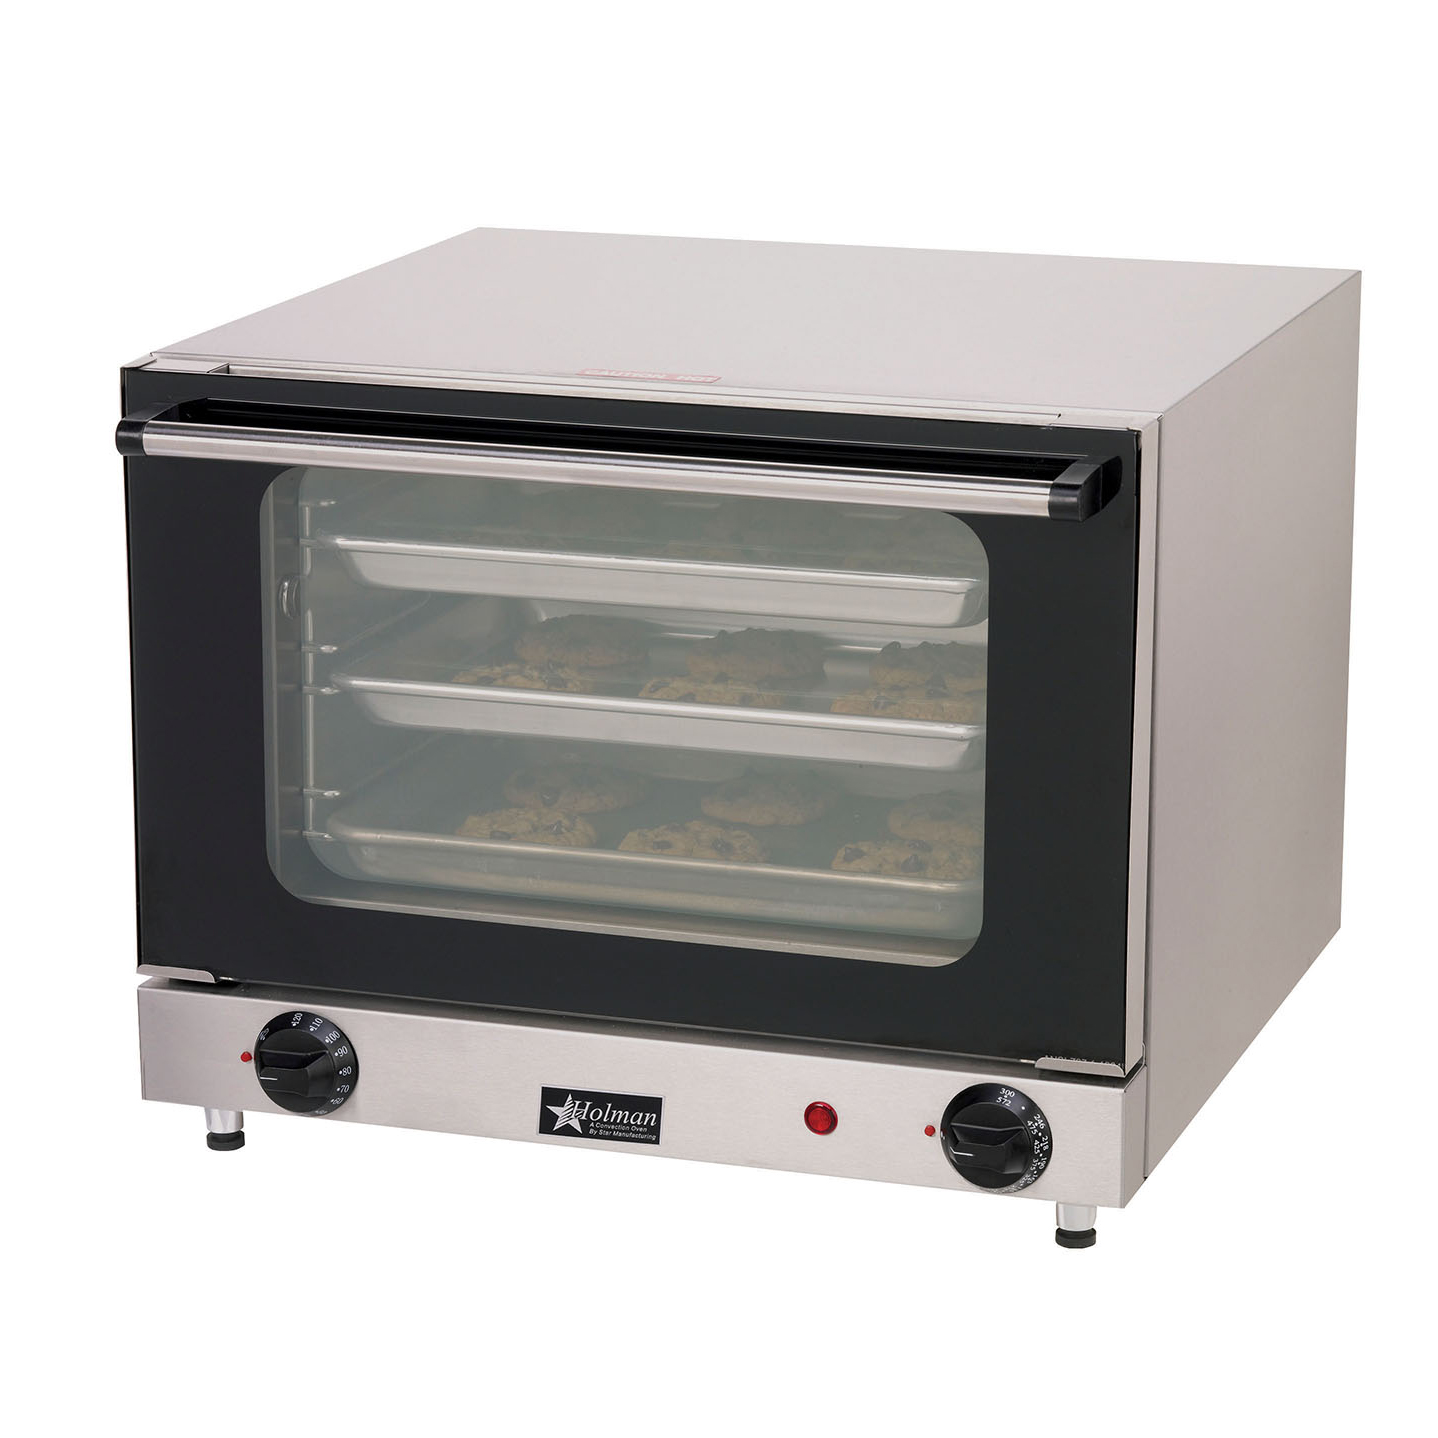 Star CCOQ-3 convection oven, electric